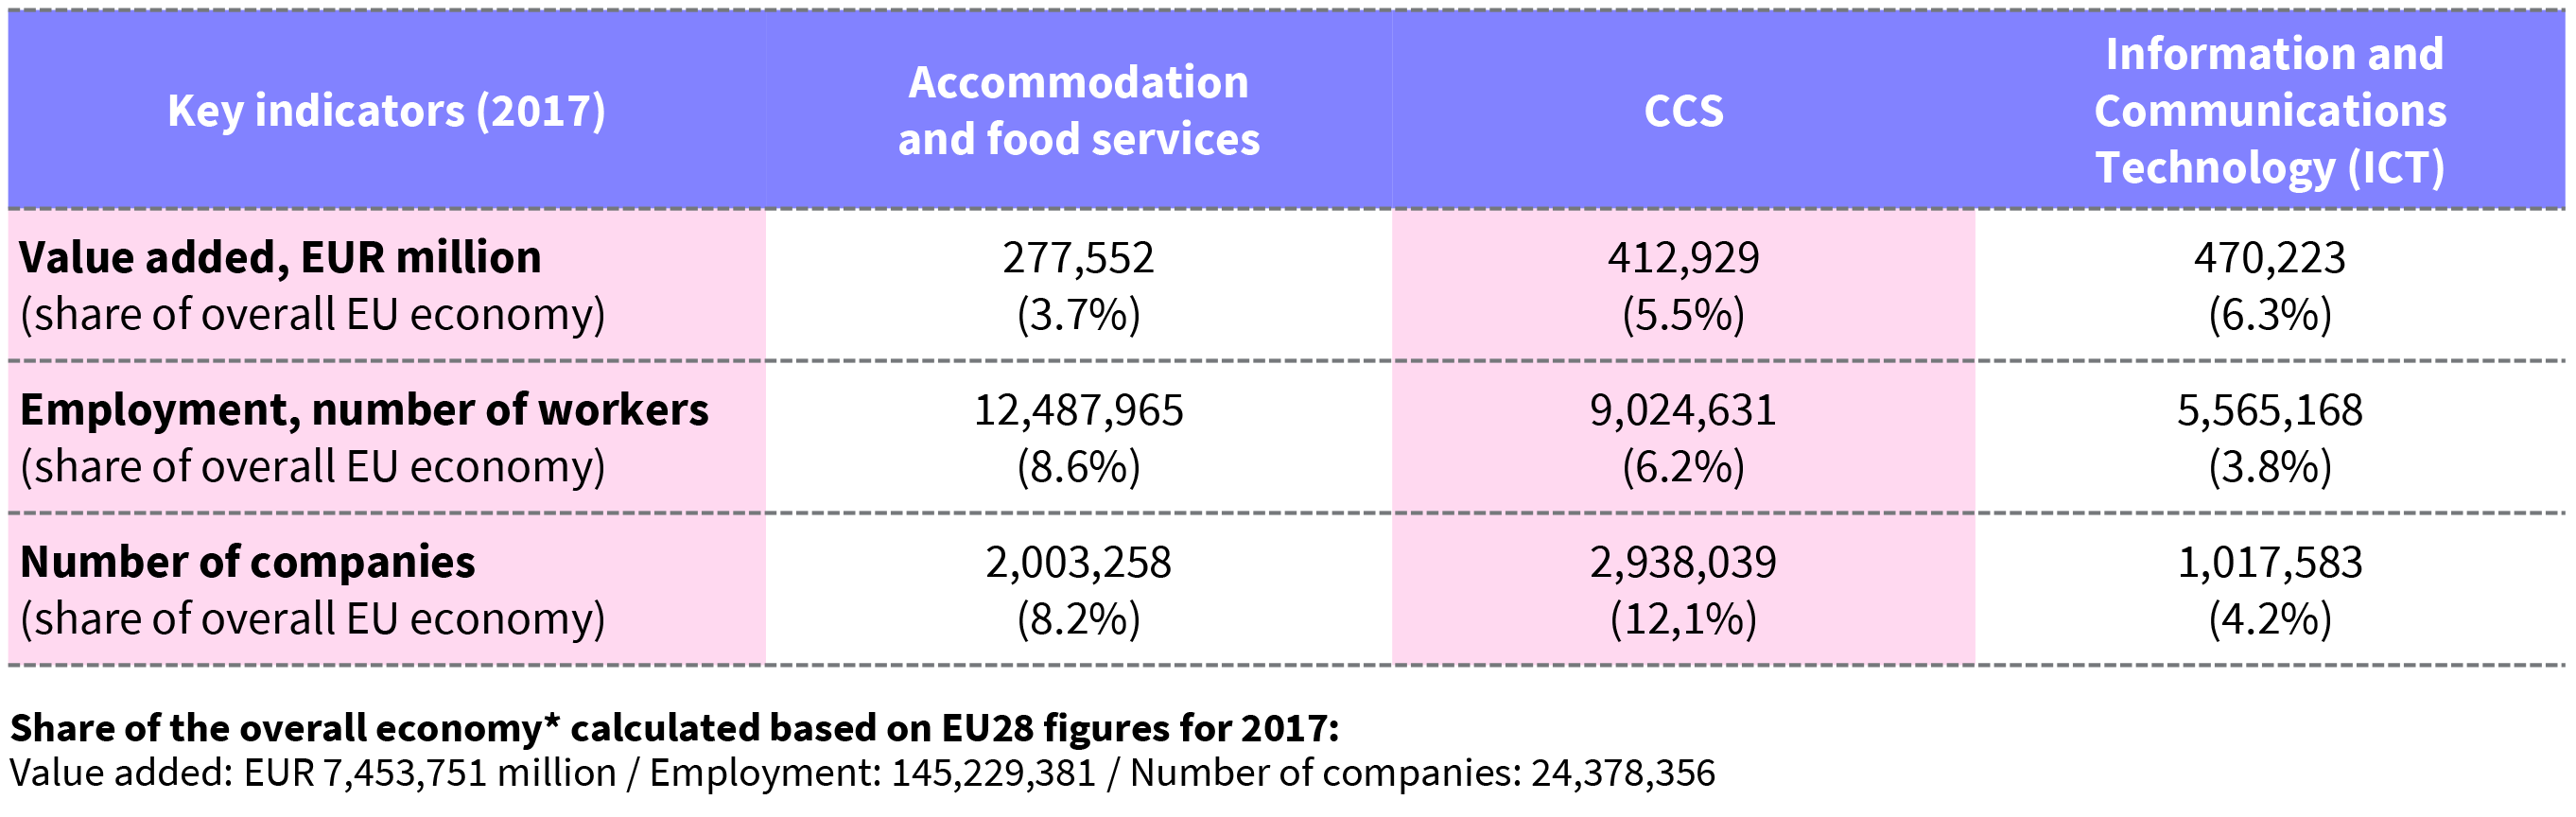 Table of the share of the CCS and their spill-over effects compared to other key sectors in the European market